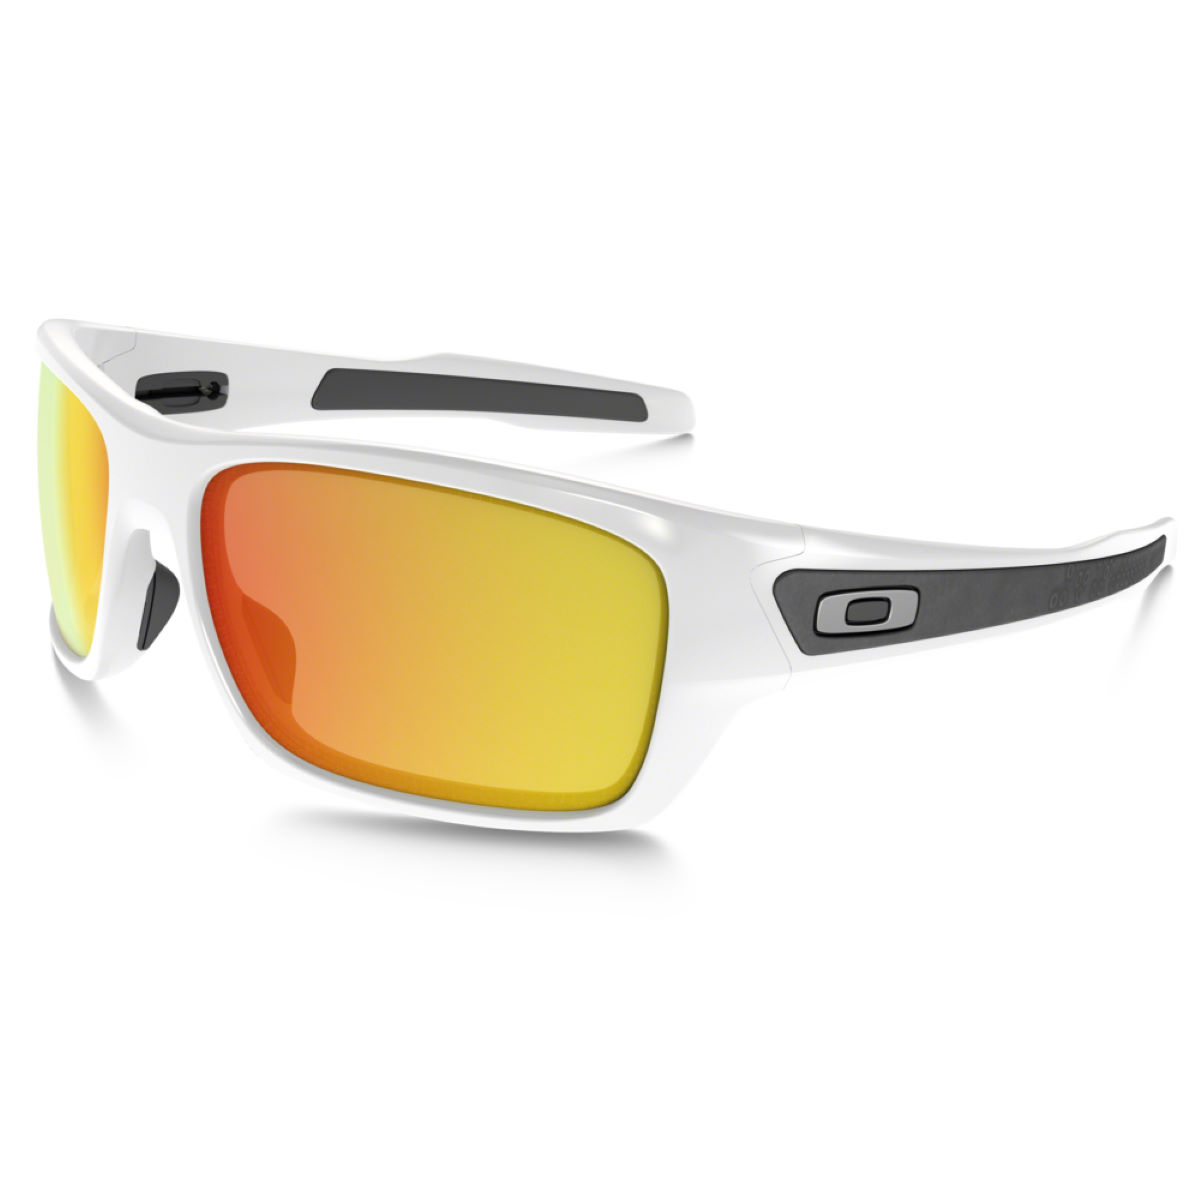 Oakley Turbine Iridium Sunglasses